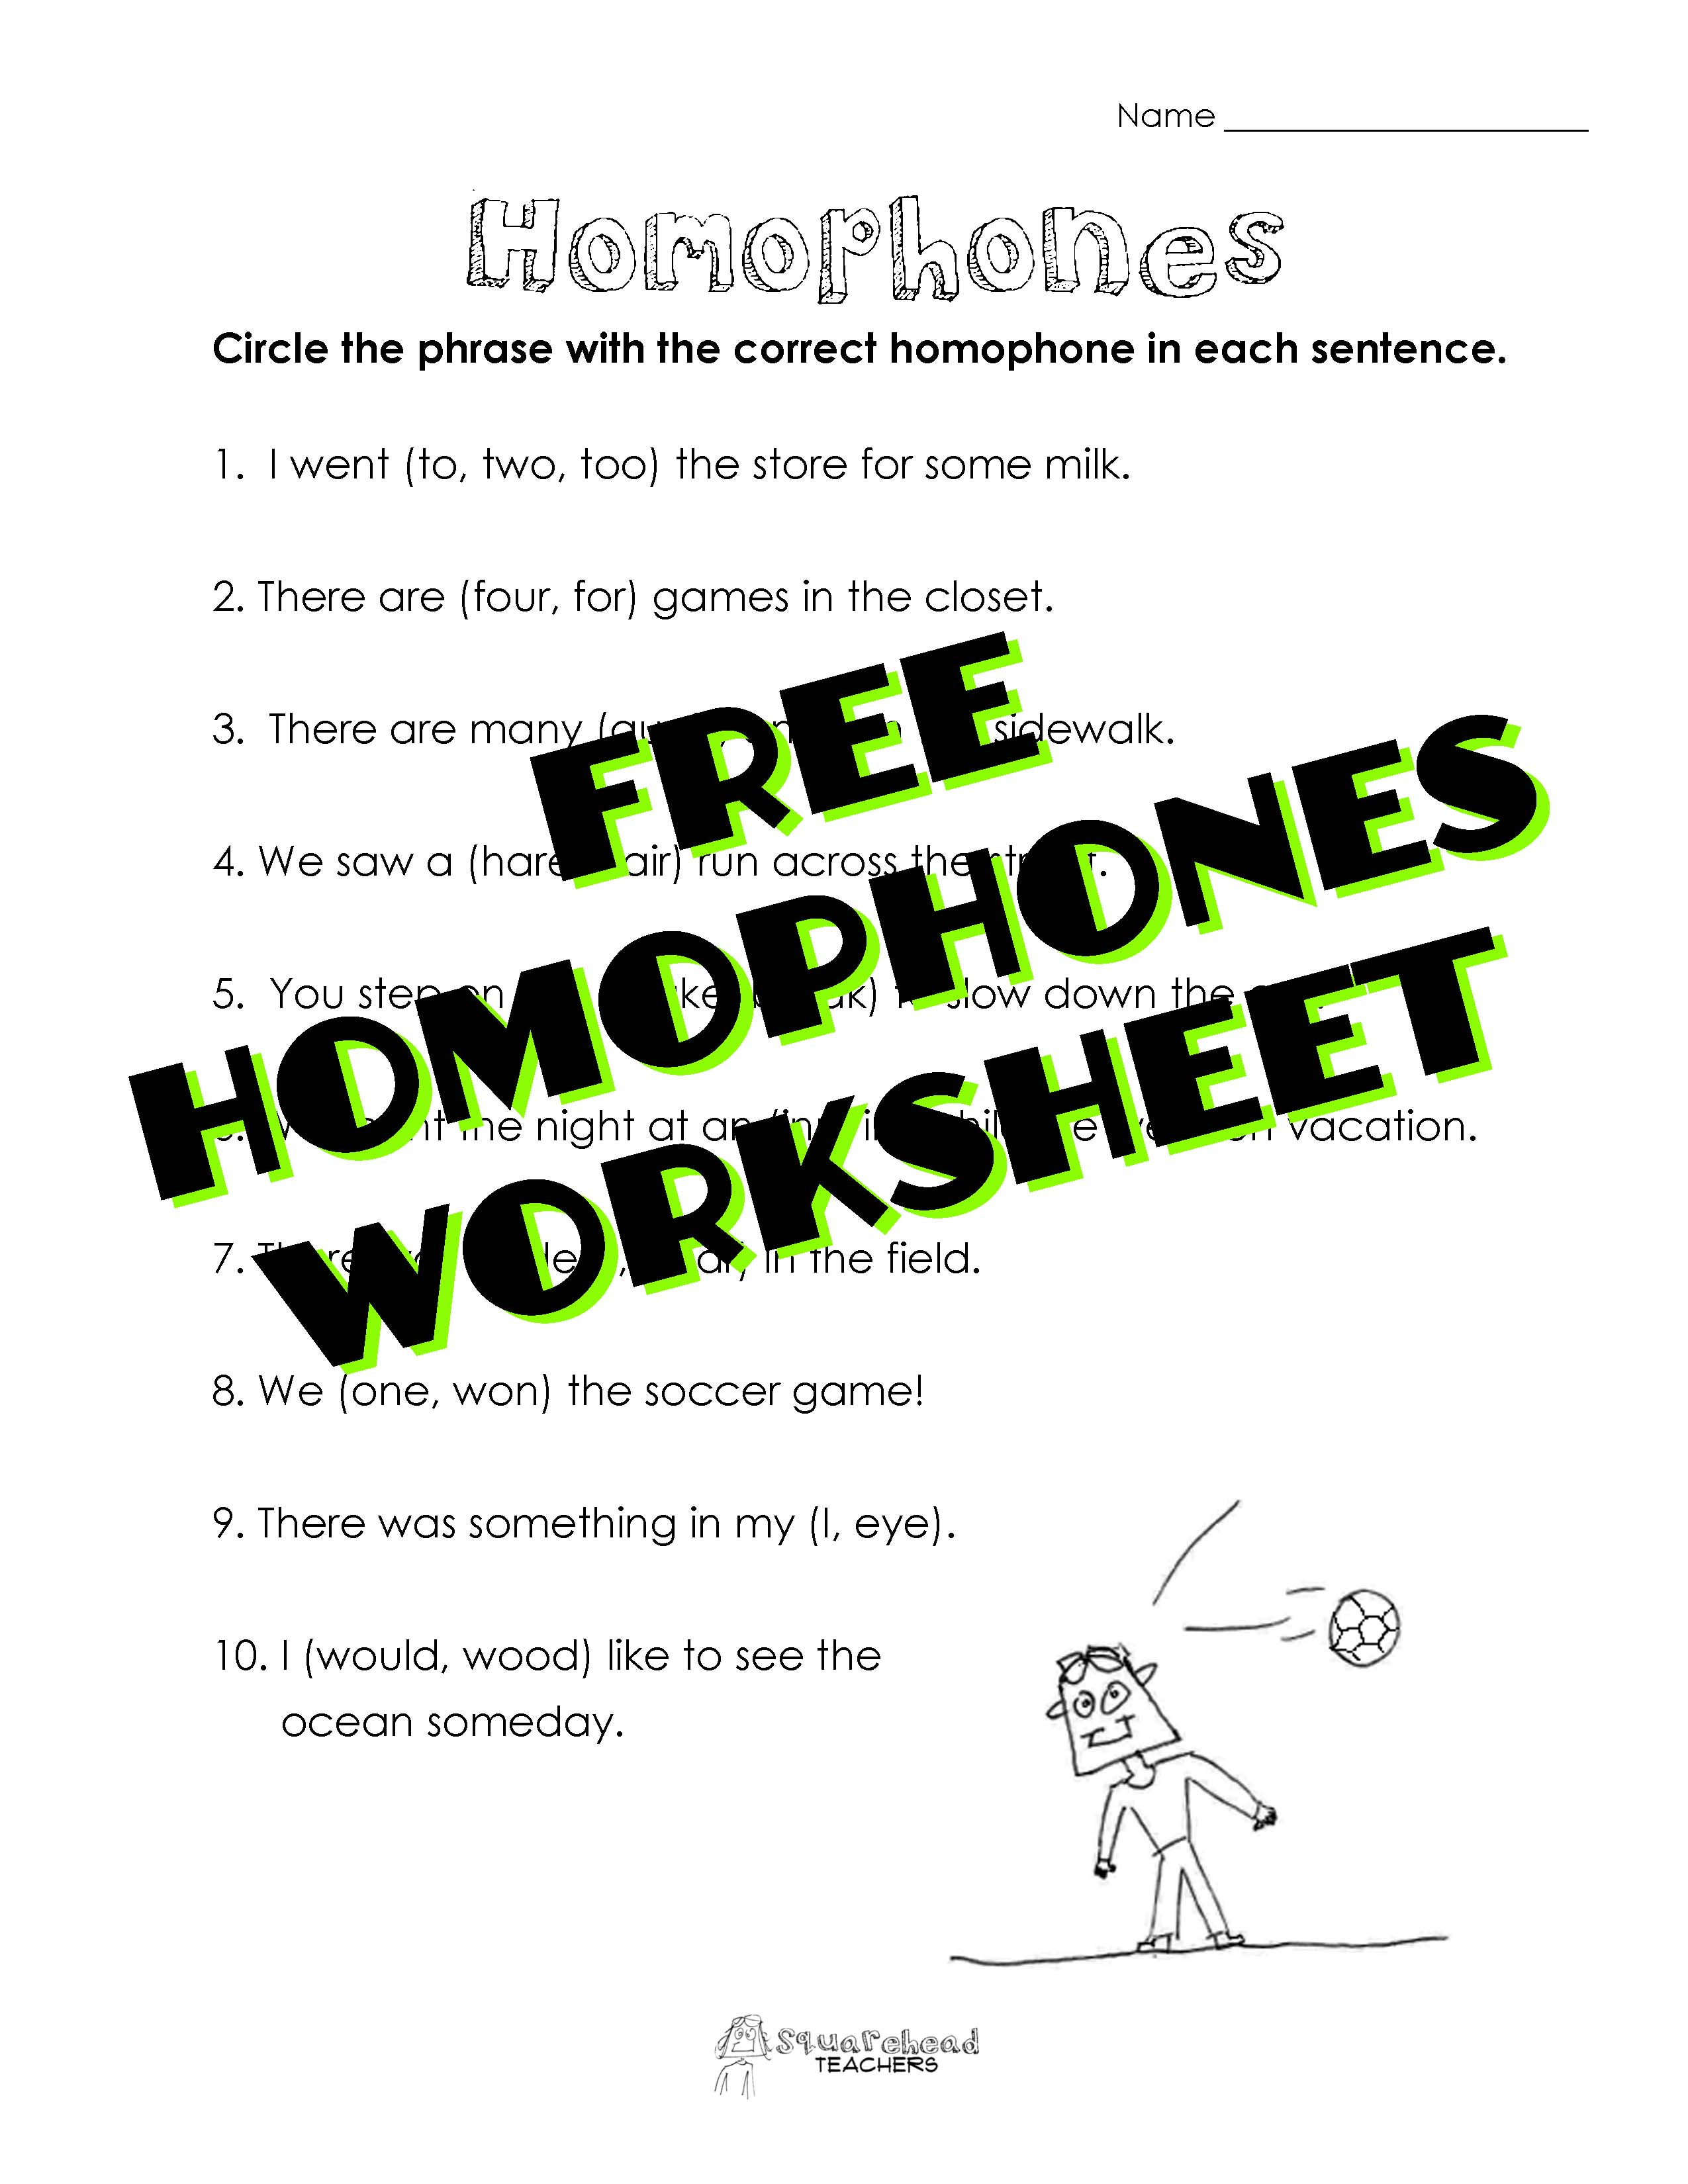 Worksheets Beasley And Homophones homophone worksheet abitlikethis heres my free homophones worksheet